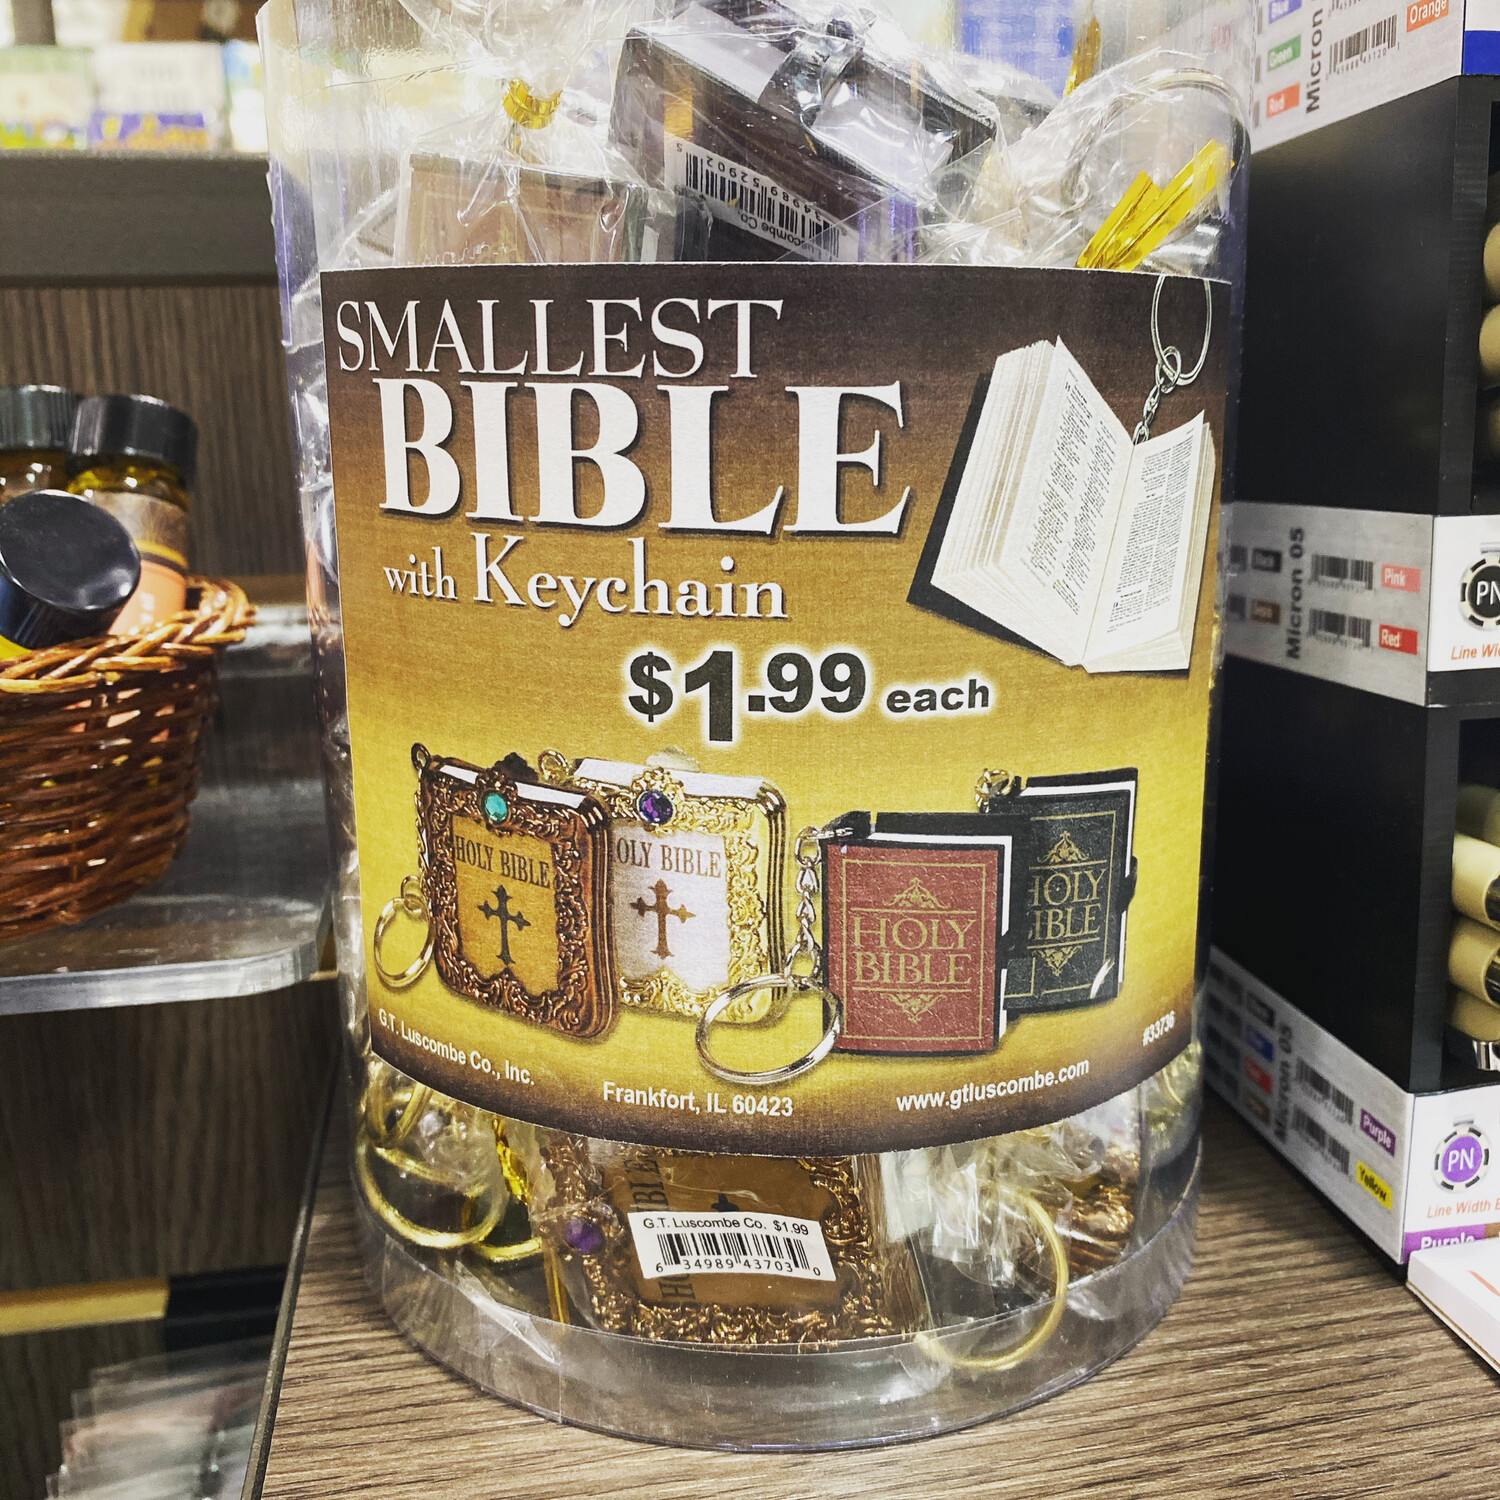 Smallest Bible Keychain, Gold/White